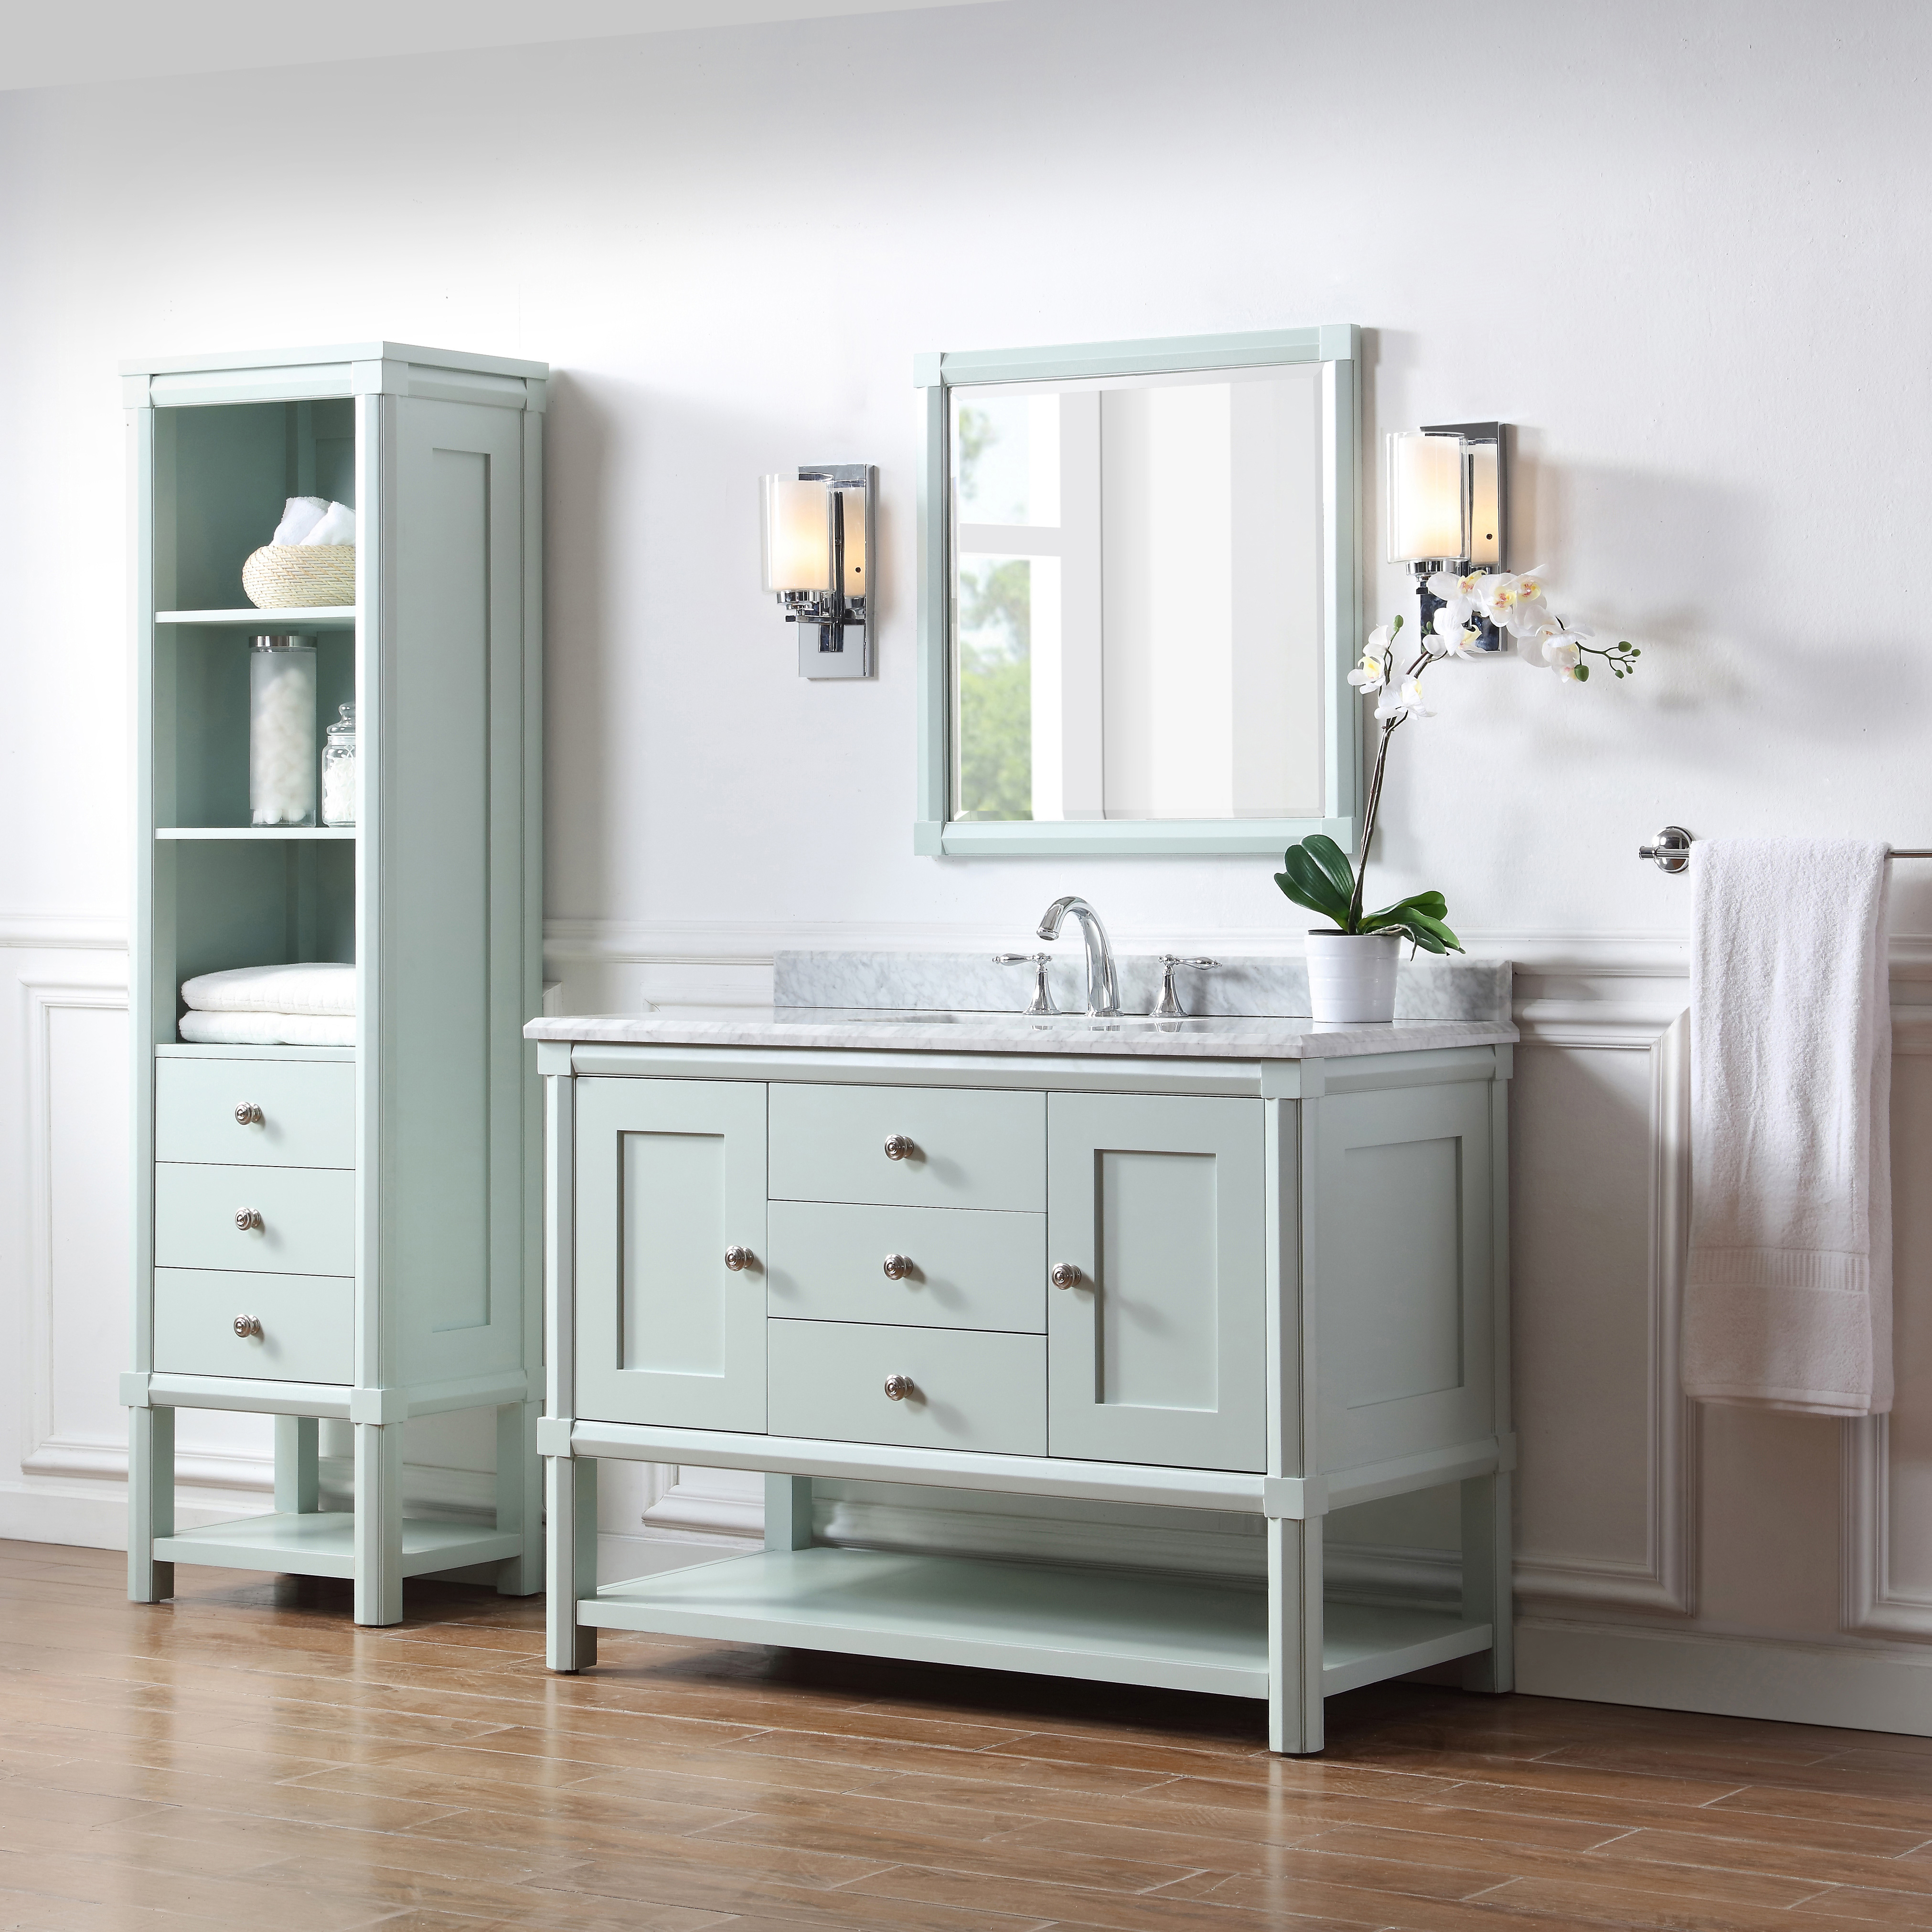 These Bath Vanities Deliver On Storage